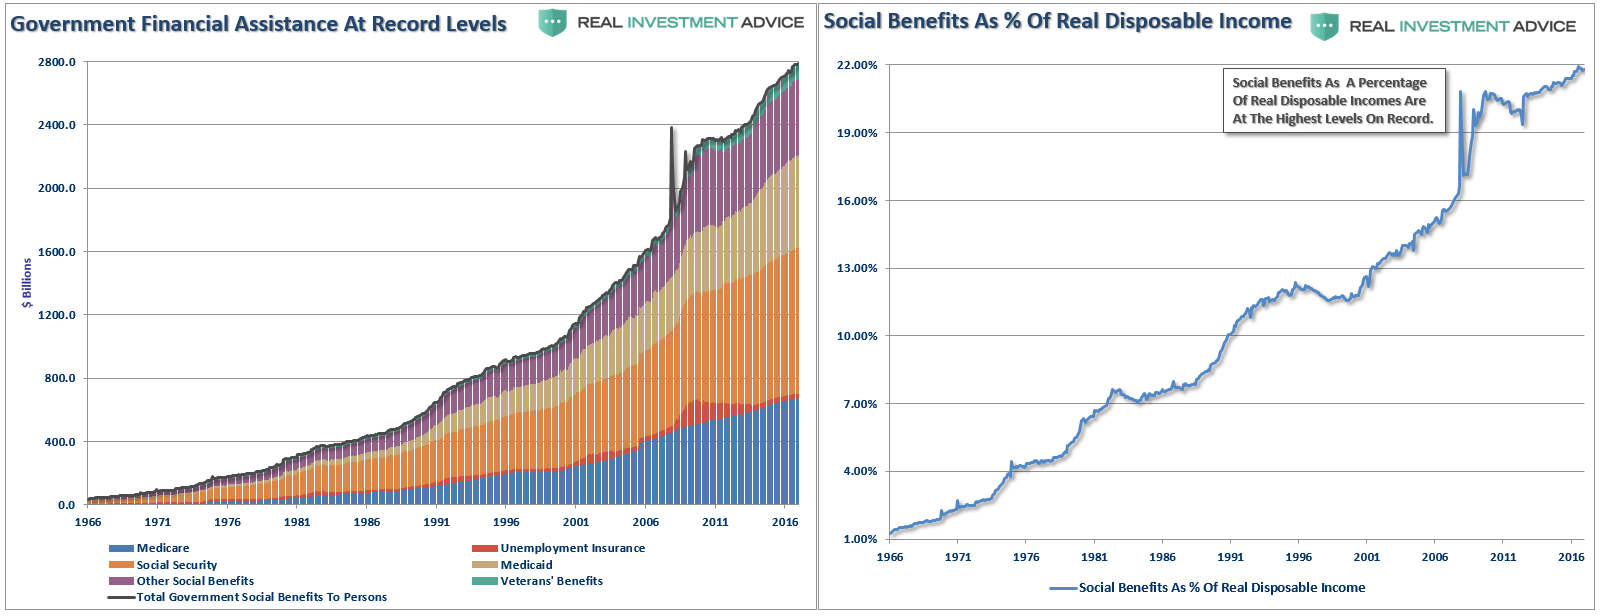 Government Financial Assistance and Social Benefits, 1966 - 2016